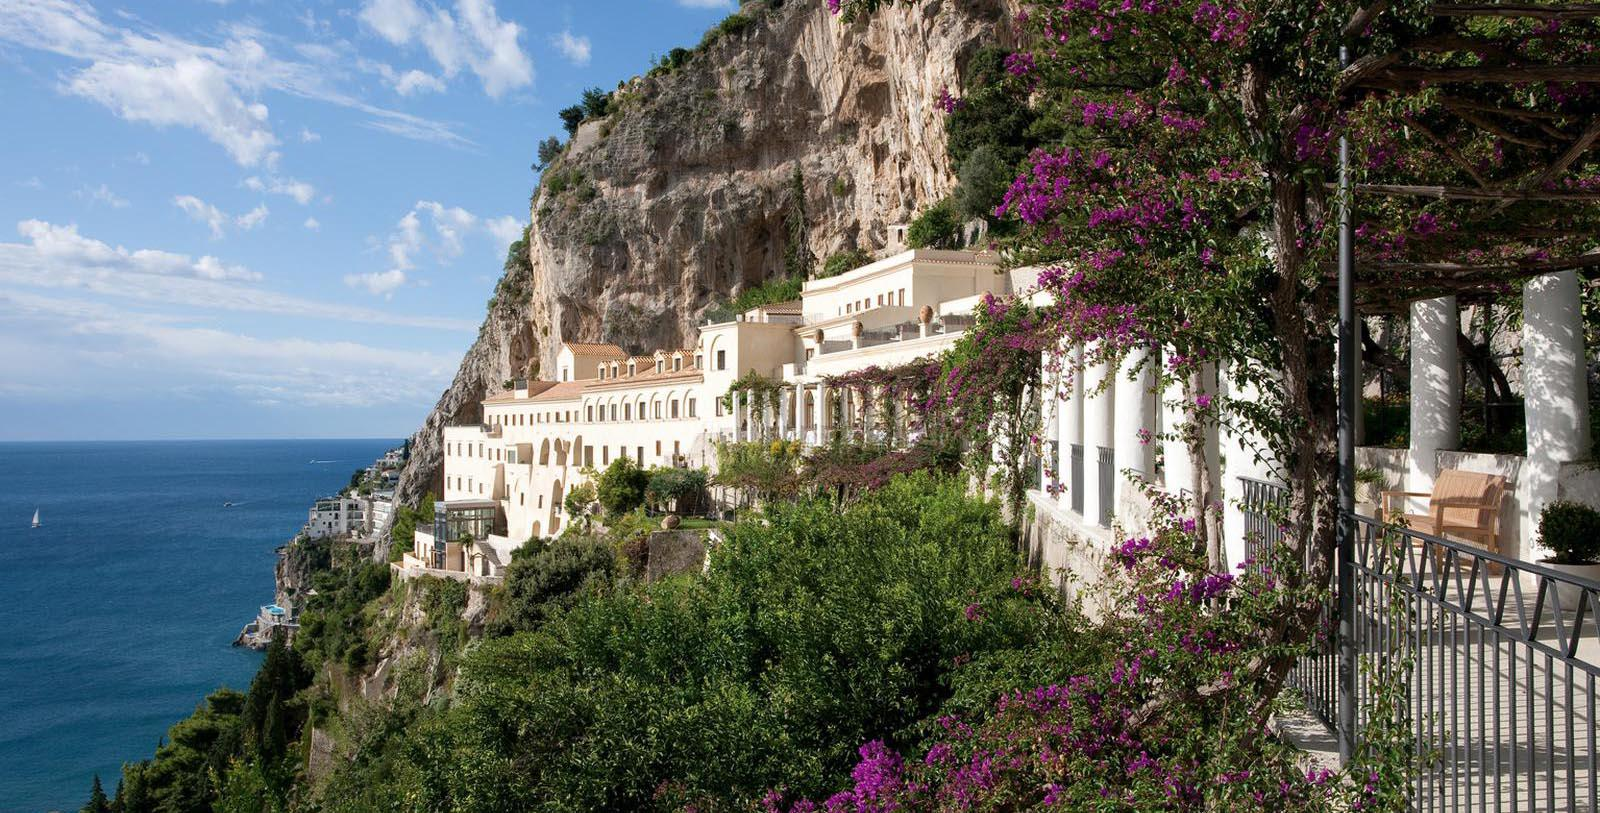 Image of Hotel Exterior NH Collection Grand Hotel Convento di Amalfi, 1212 Member of Historic Hotels Worldwide, in Amalfi, Italy, Overview